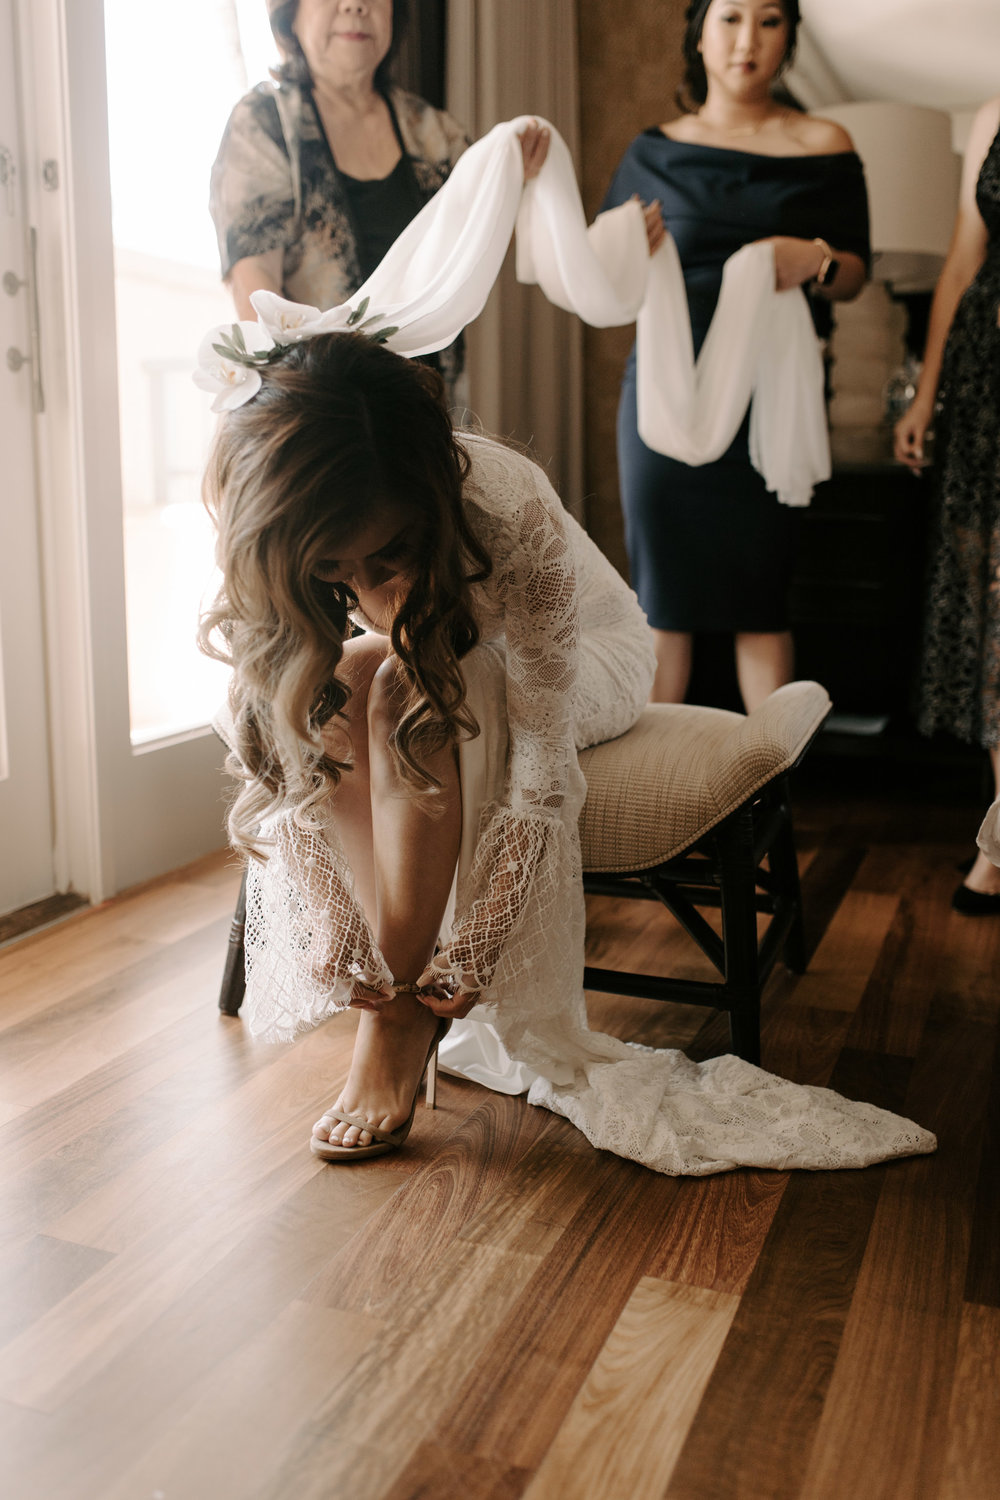 Bride putting on her shoes and getting ready at the Ritz Carlton Maui by Hawaii wedding photographer Desiree Leilani